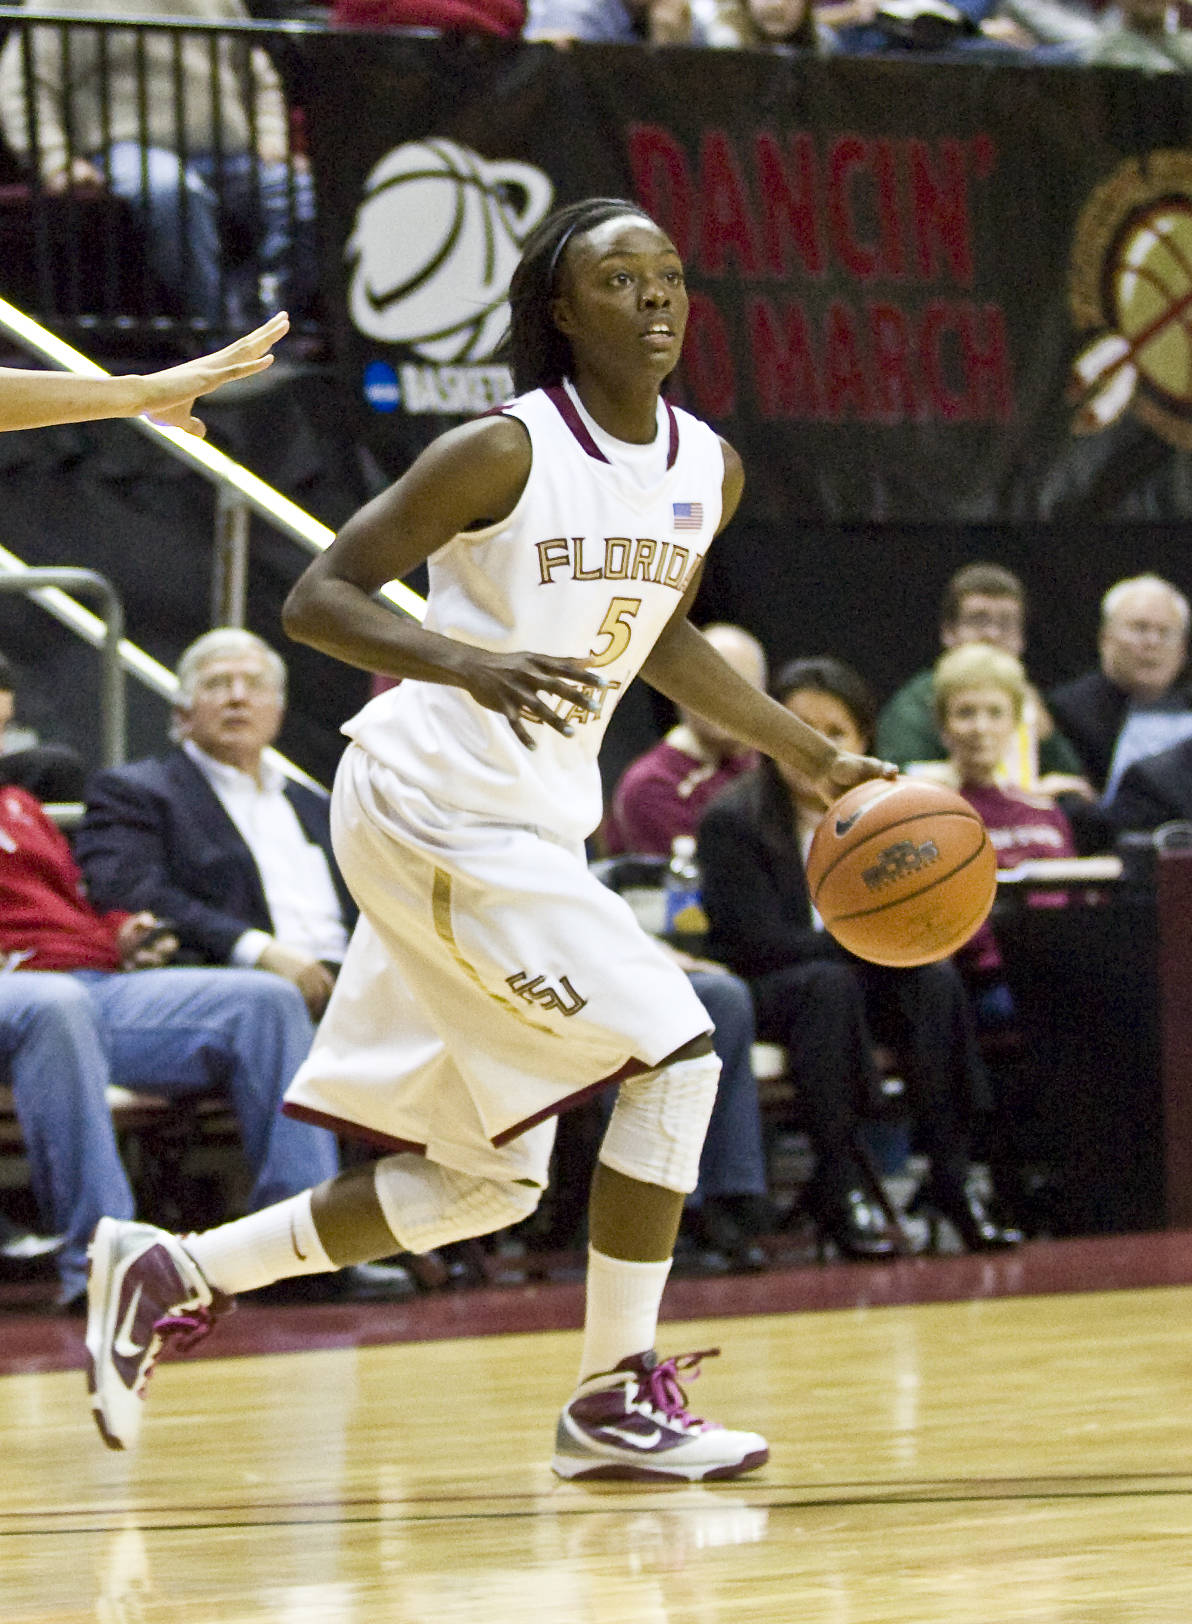 August 21 ... She is a veteran in the backcourt. Talented guard Christian Hunnicutt is one of just two seniors on the Seminoles' roster and the Georgia native is looking to go out on top.